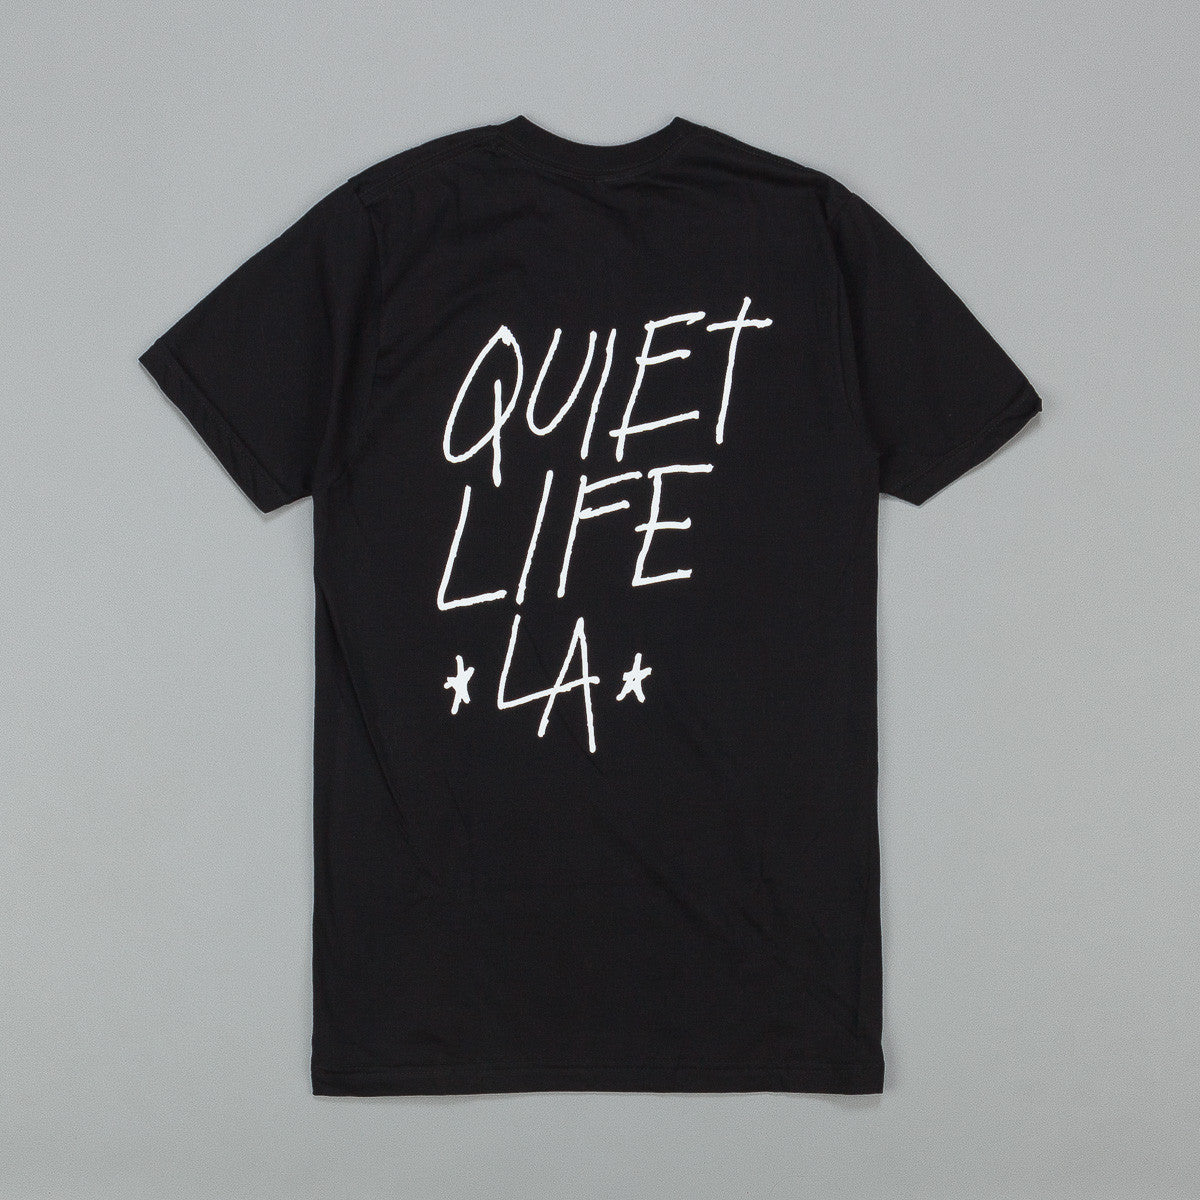 The Quiet Life QLA T-Shirt - Black